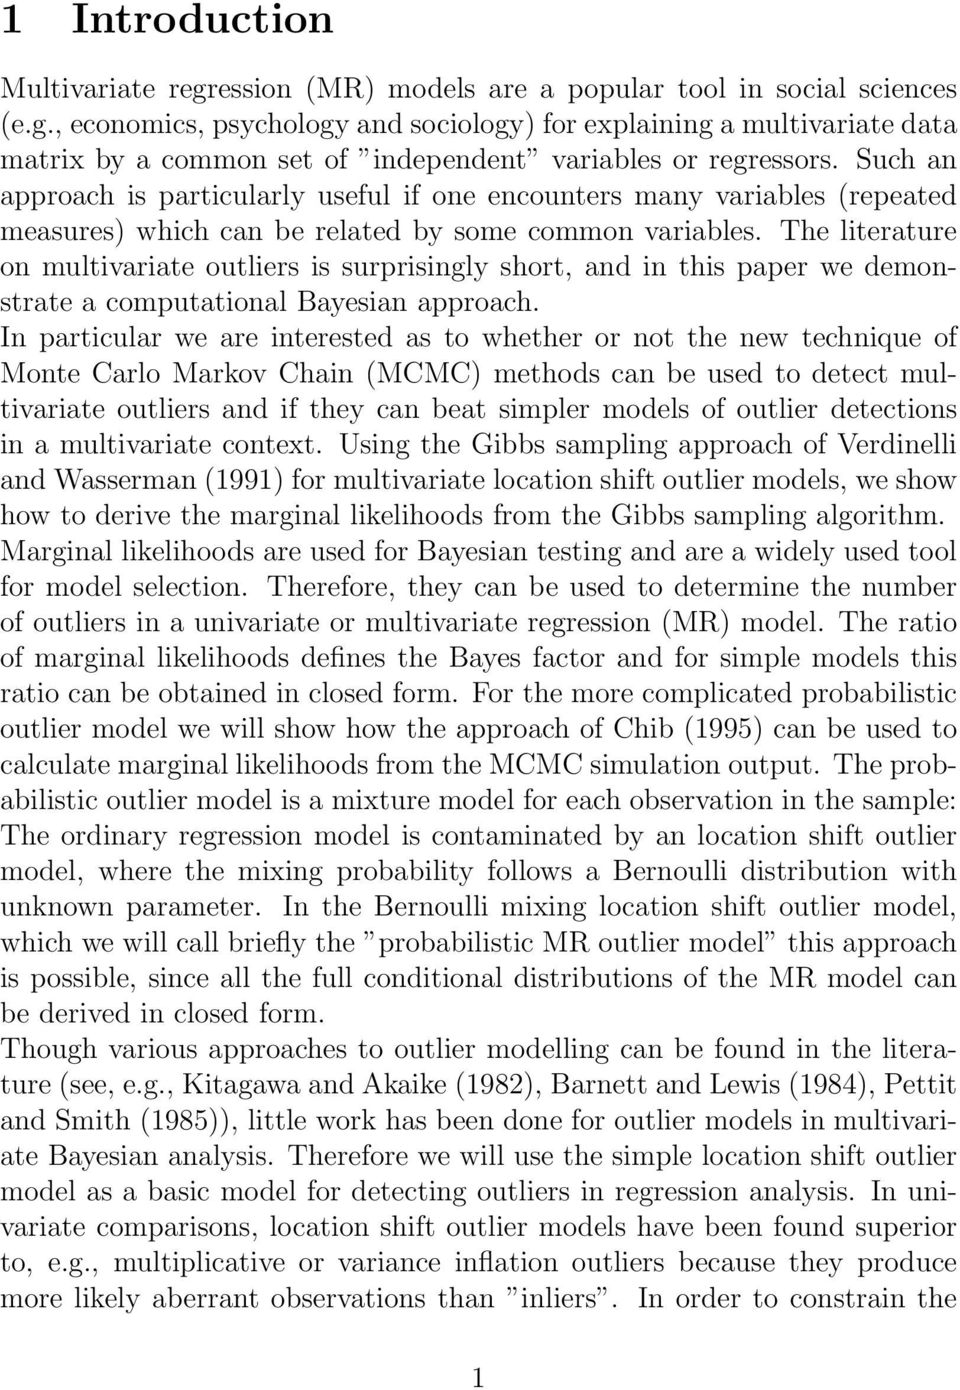 The literature on multivariate outliers is surprisingly short, and in this paper we demonstrate a computational Bayesian approach.